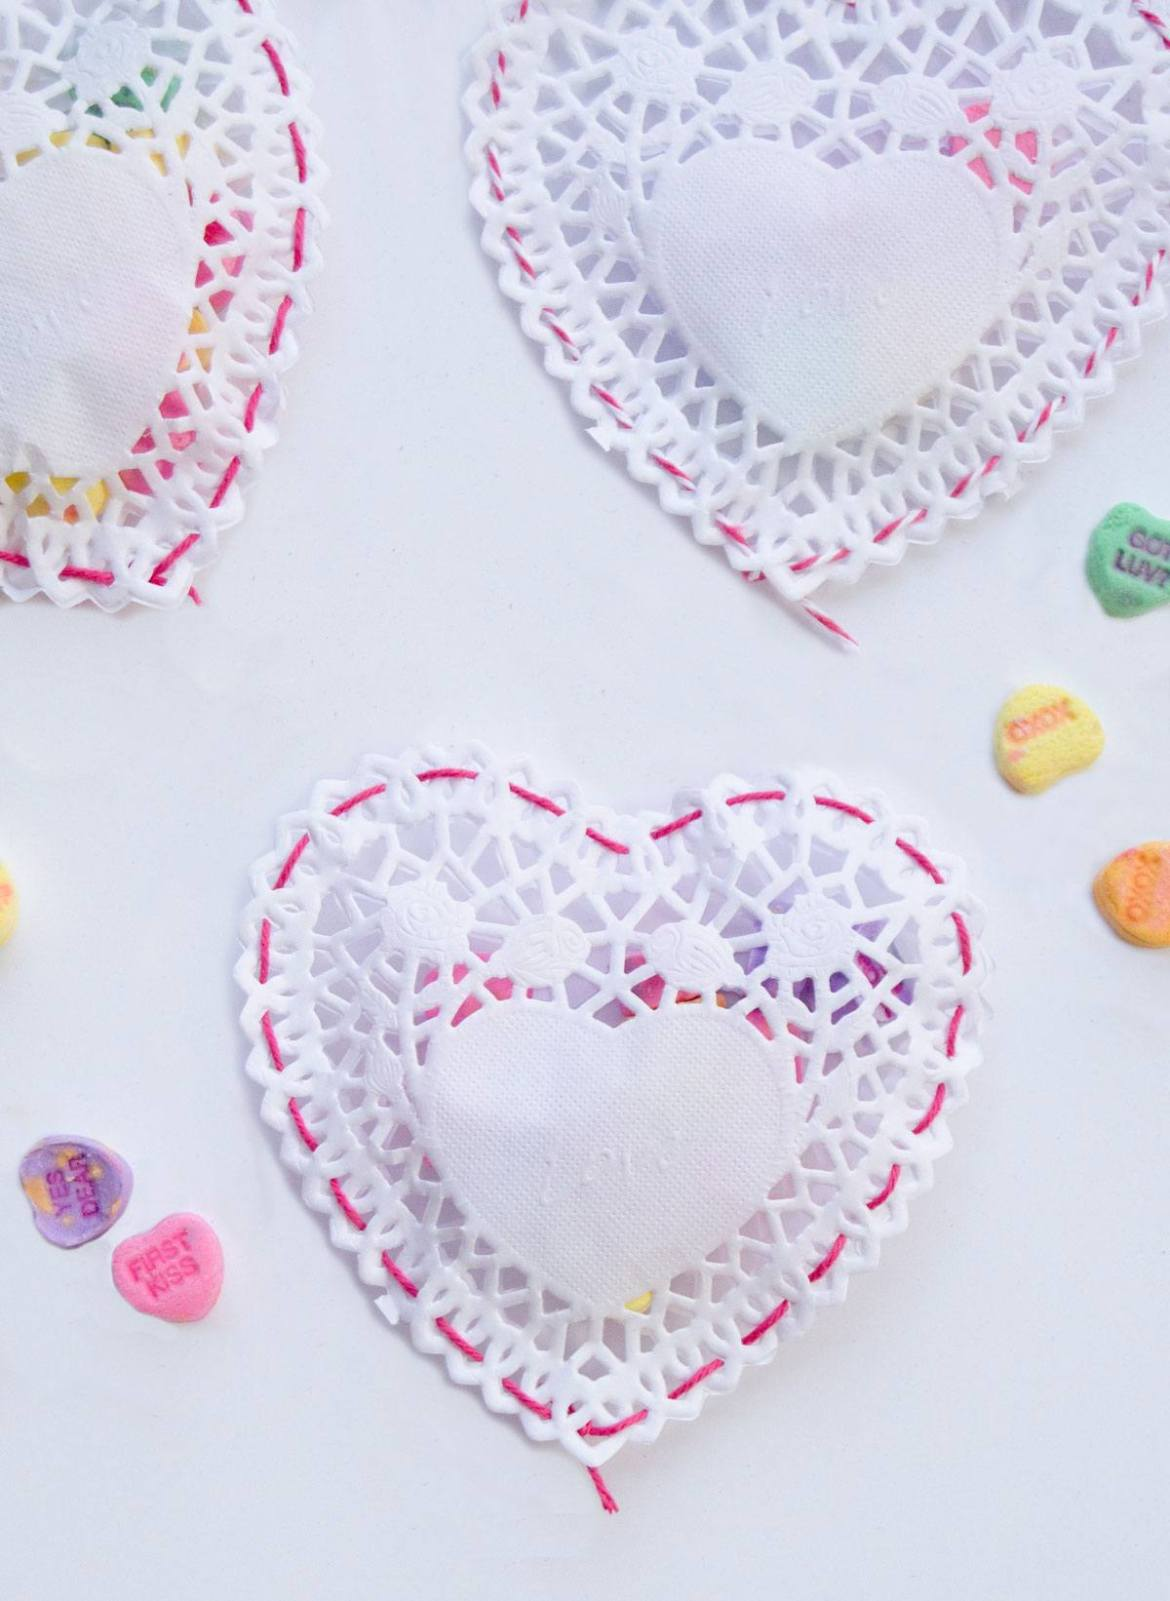 Doily Heart Pouch Tutorial by Lindi Haws of Love The Day